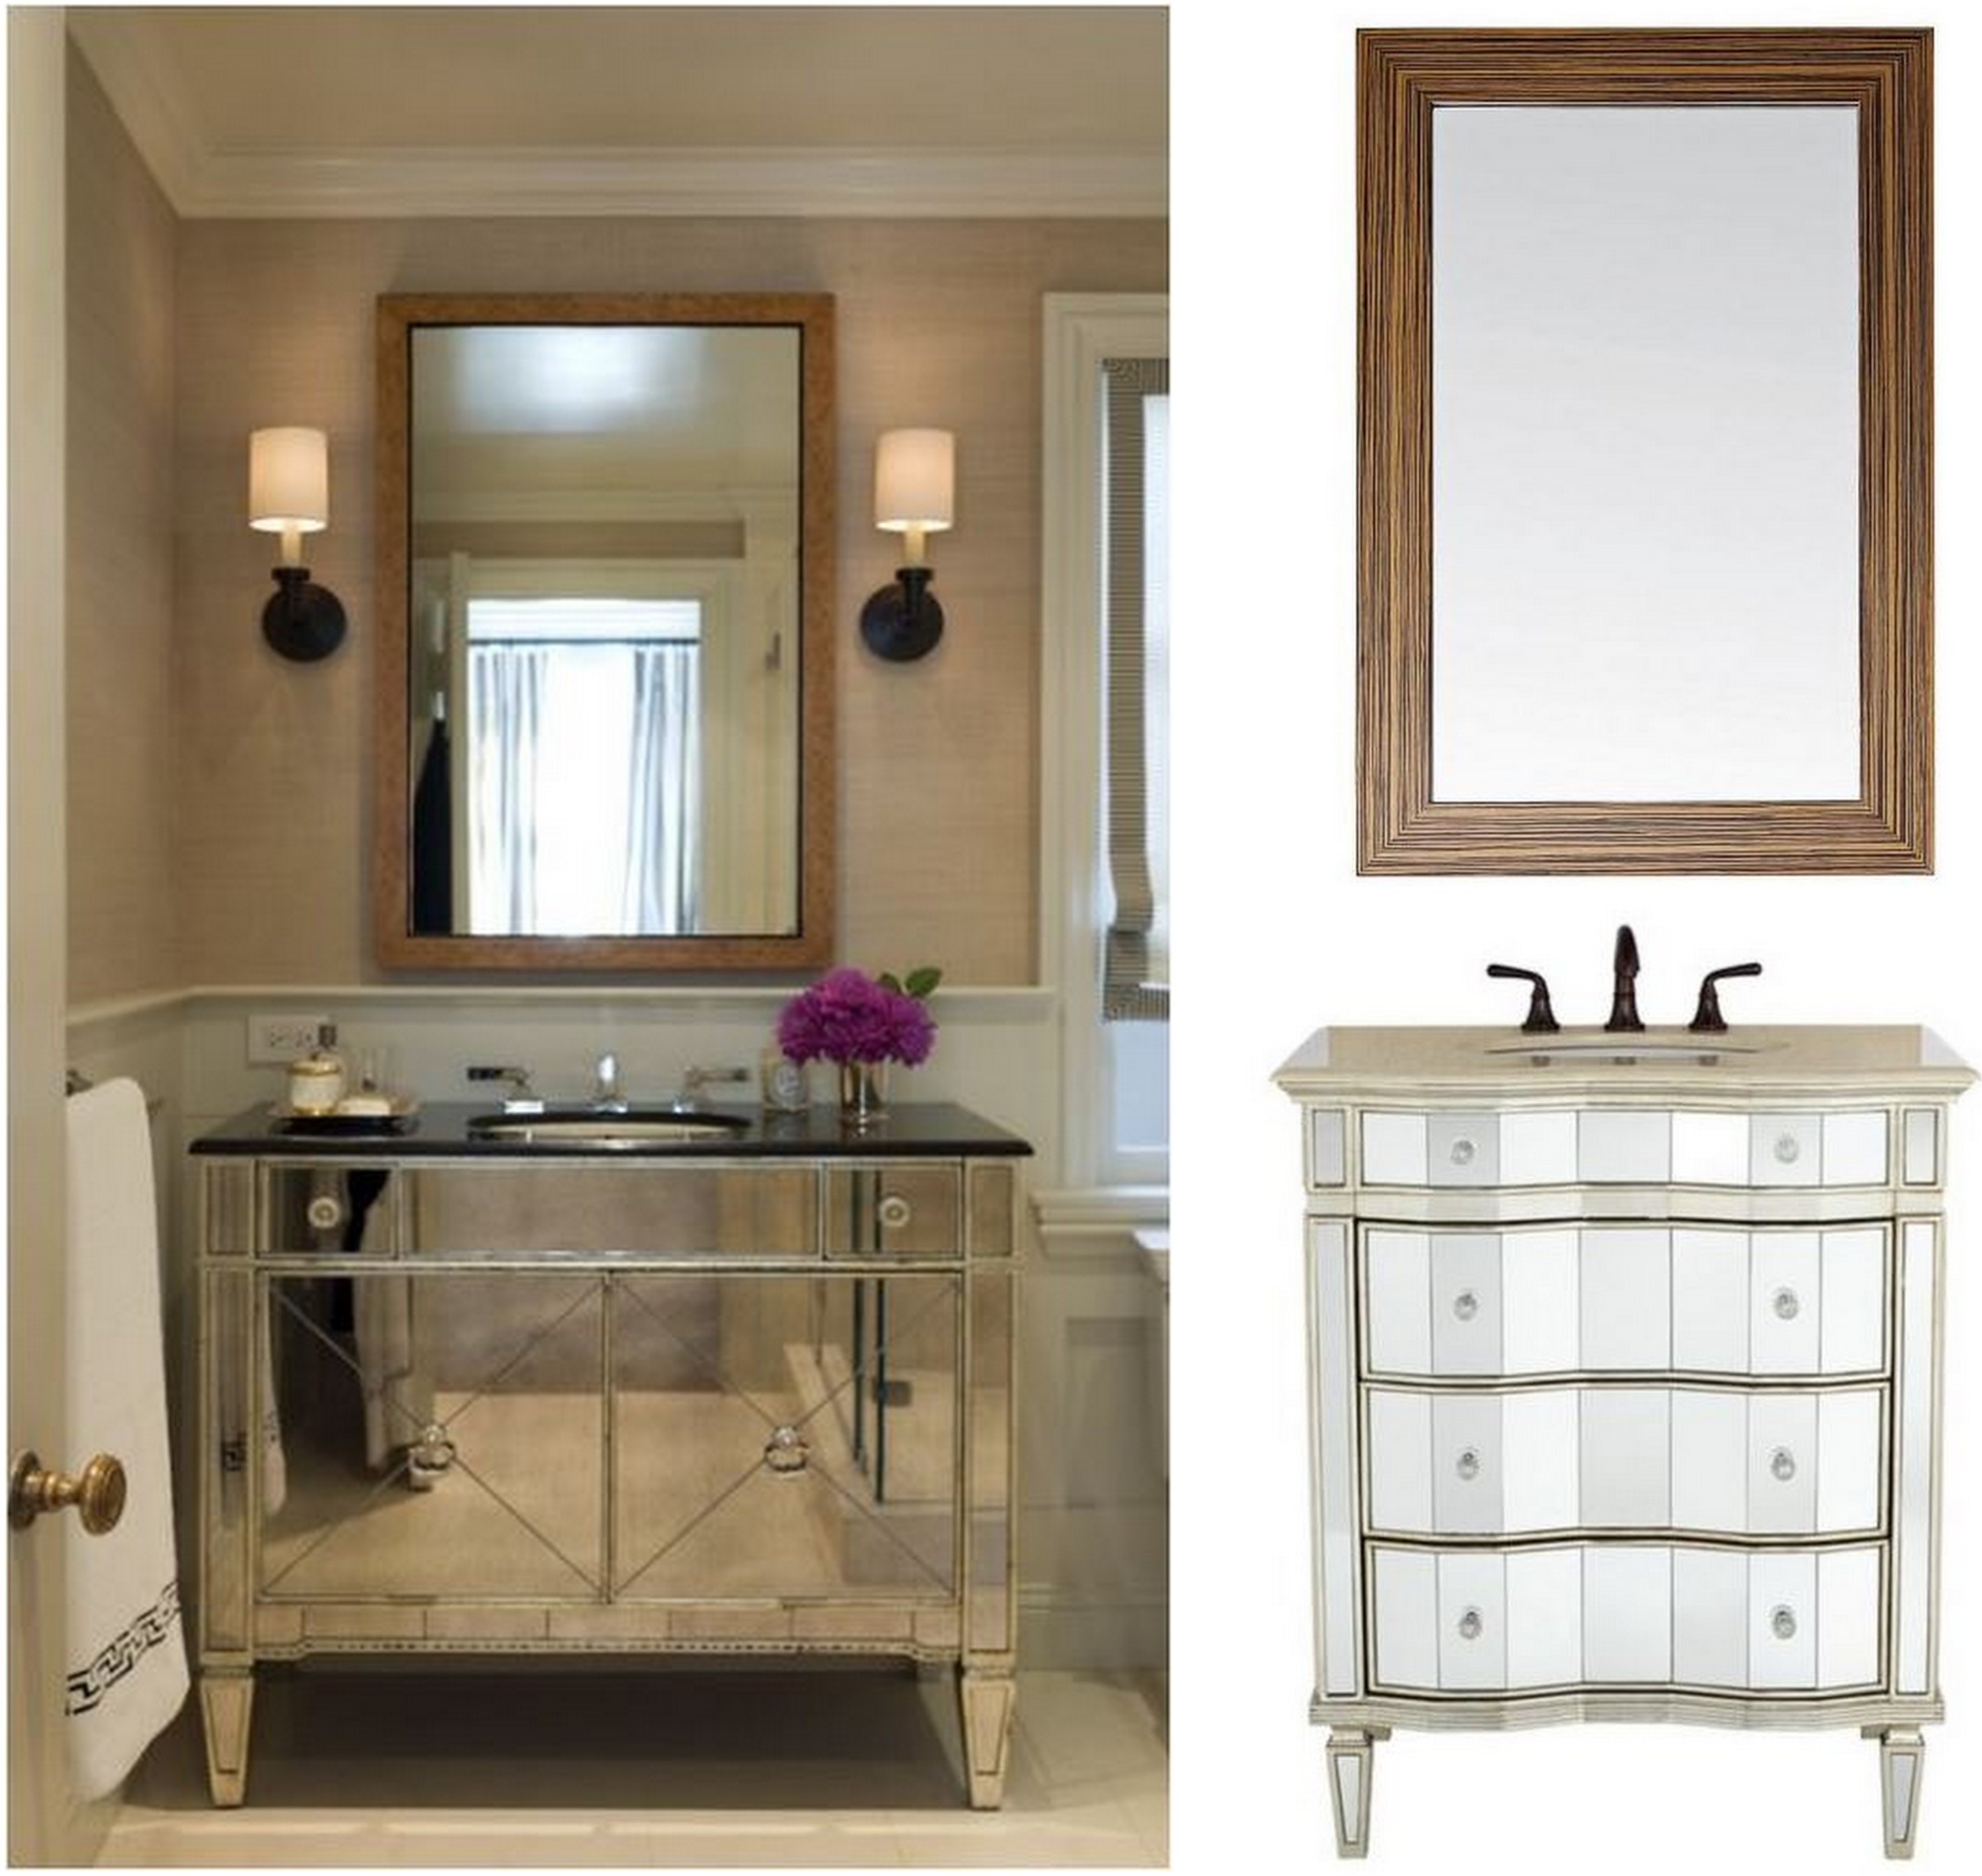 Cool mirrored vanity for home furniture and vanity mirror with lights